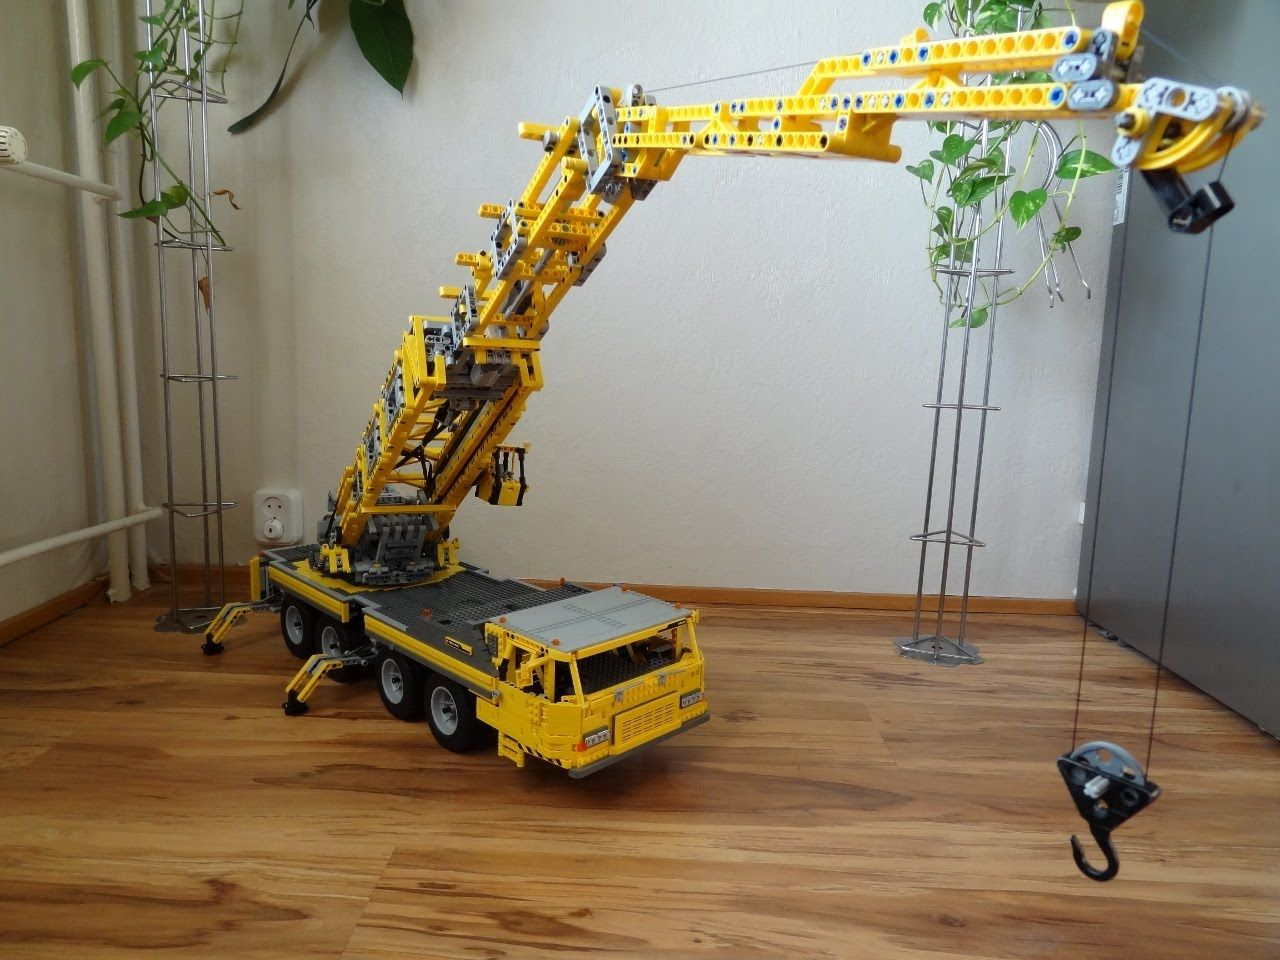 lego big mobile crane 2 motorized lego awesomeness. Black Bedroom Furniture Sets. Home Design Ideas